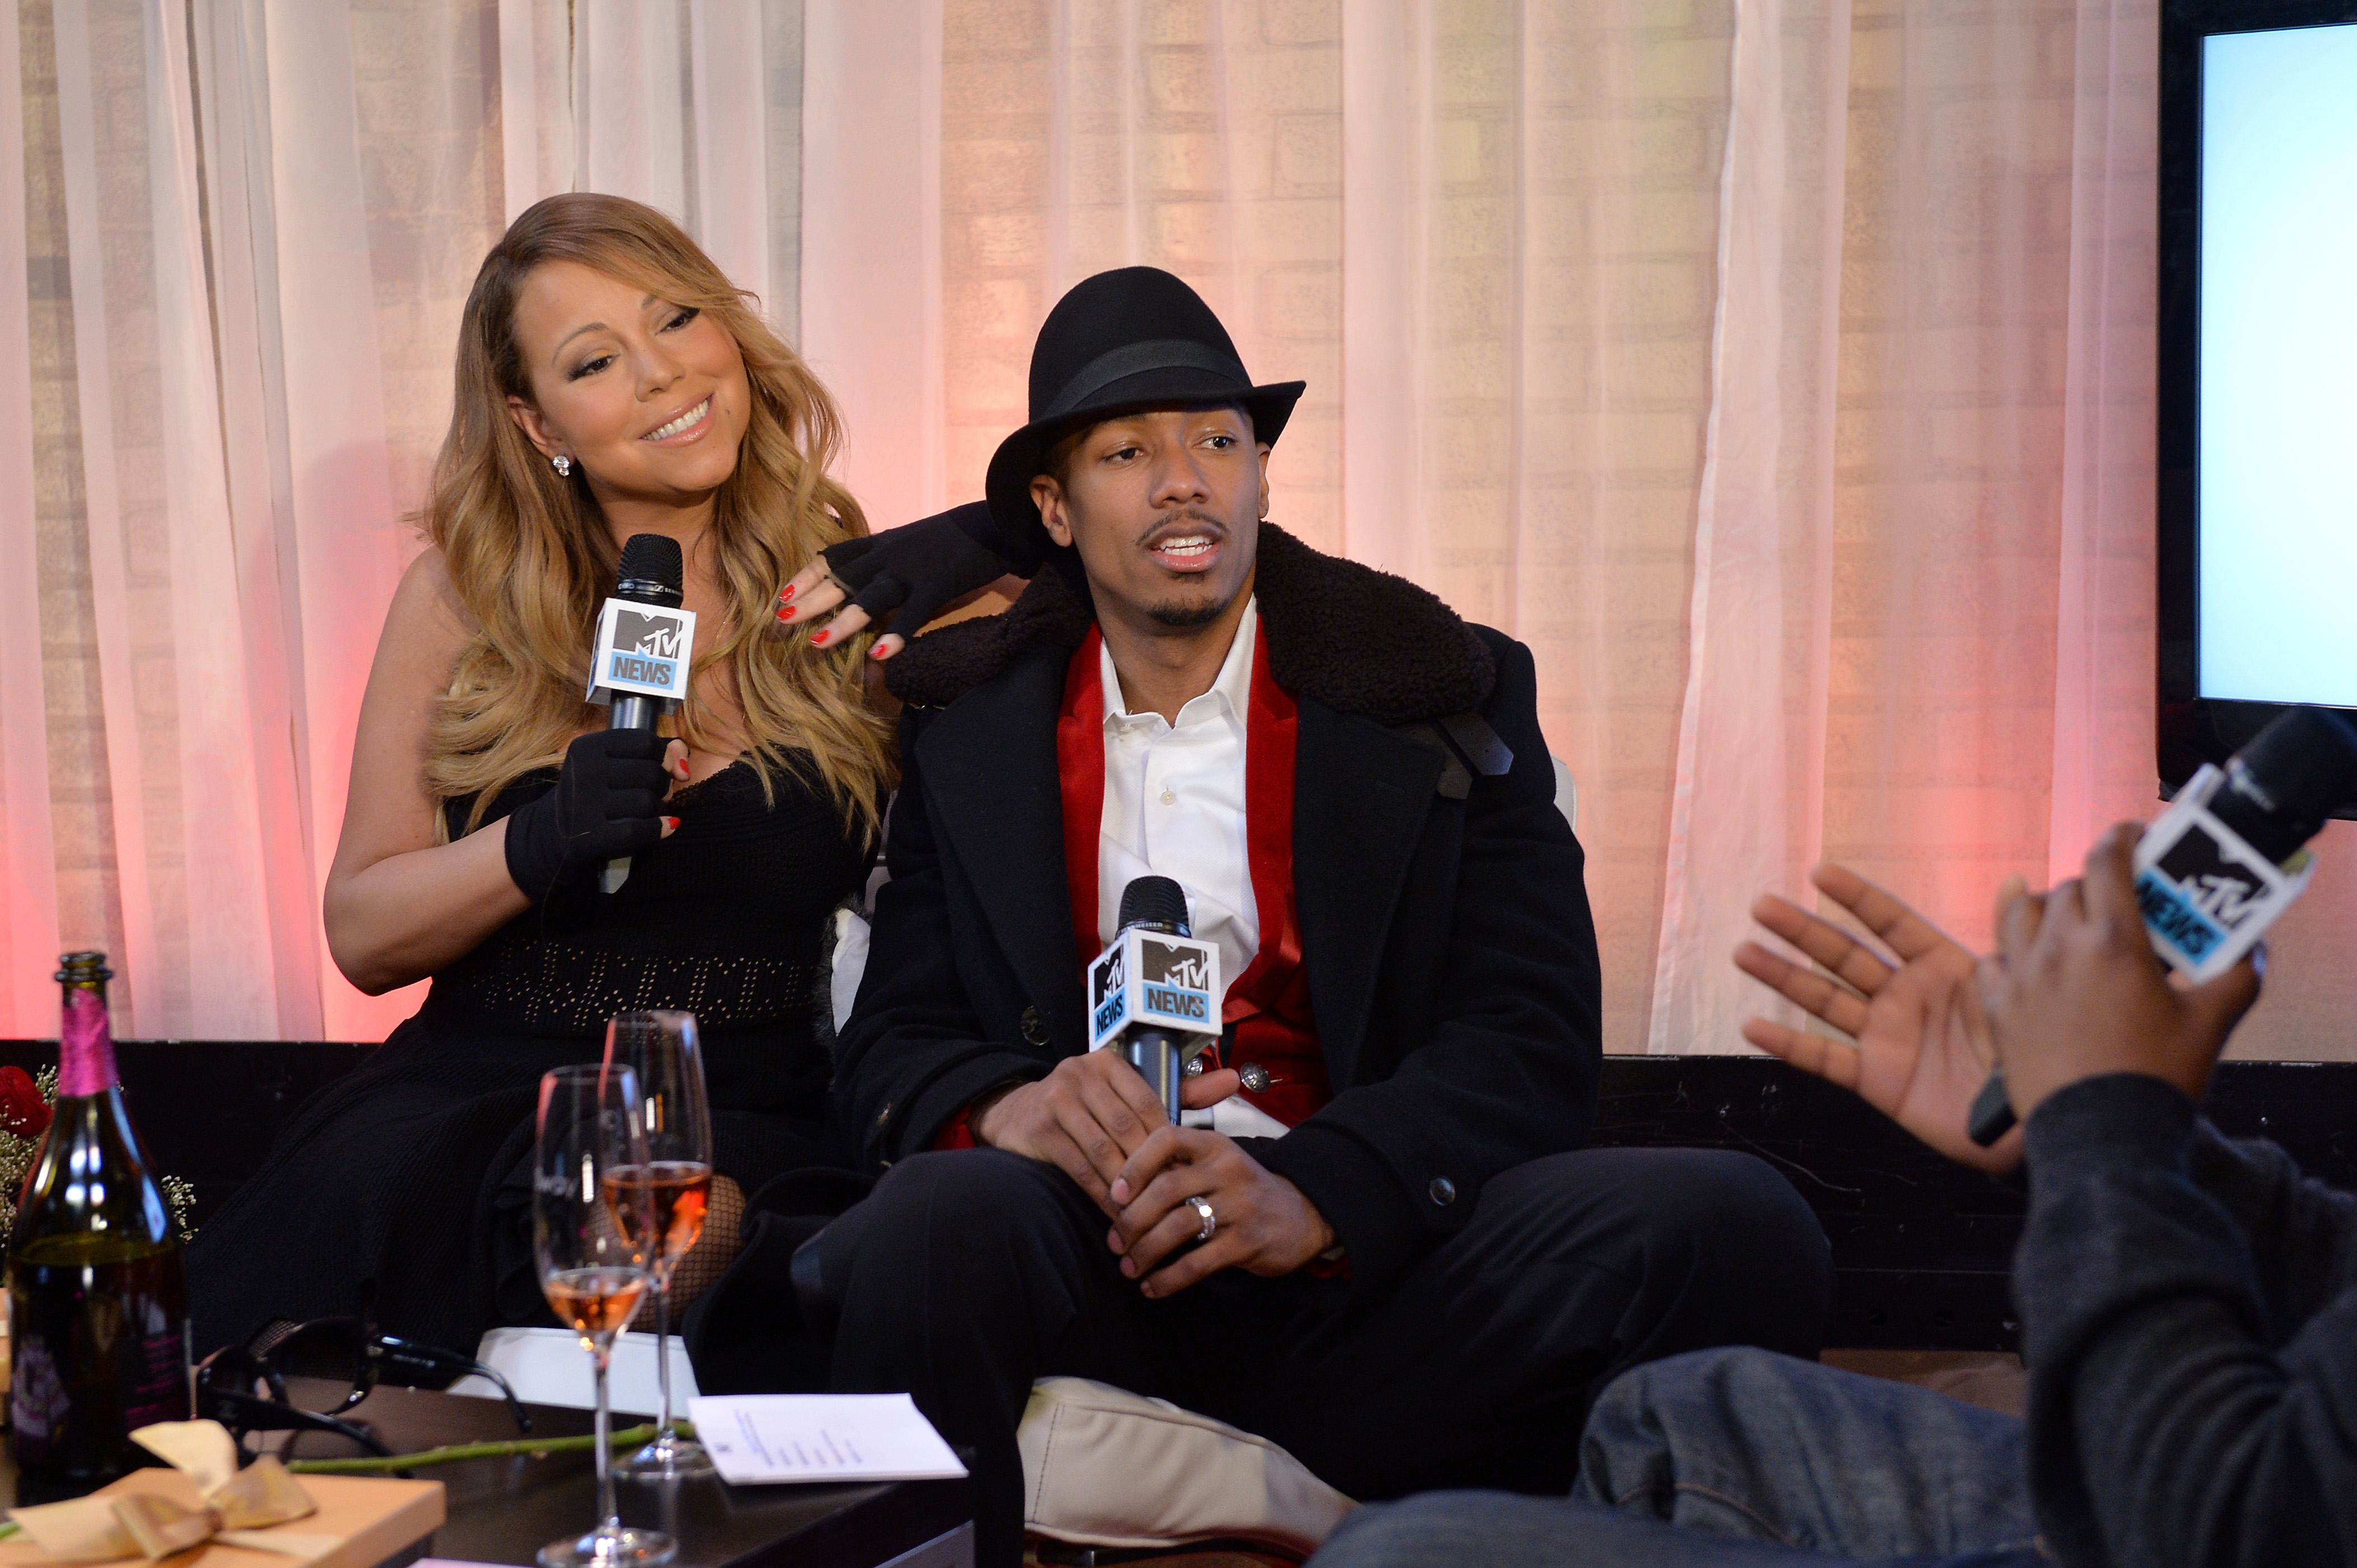 Mariah Carey and Nick Cannon at MTV Studios on February 12, 2014. (Photo by Larry Busacca/Getty Images)